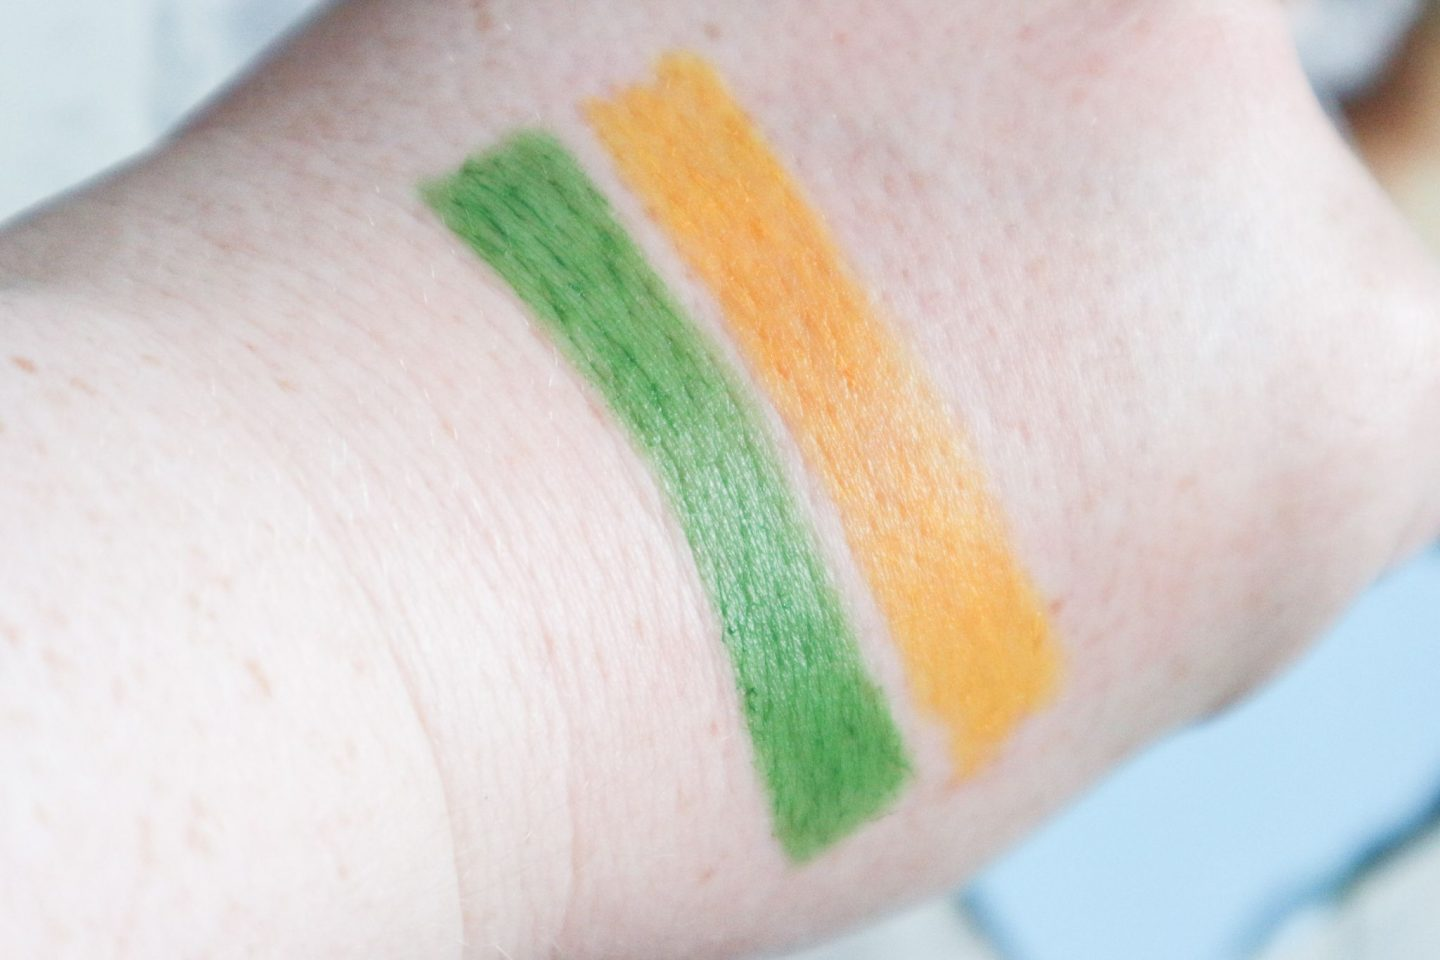 Crayola Face Crayon swatches